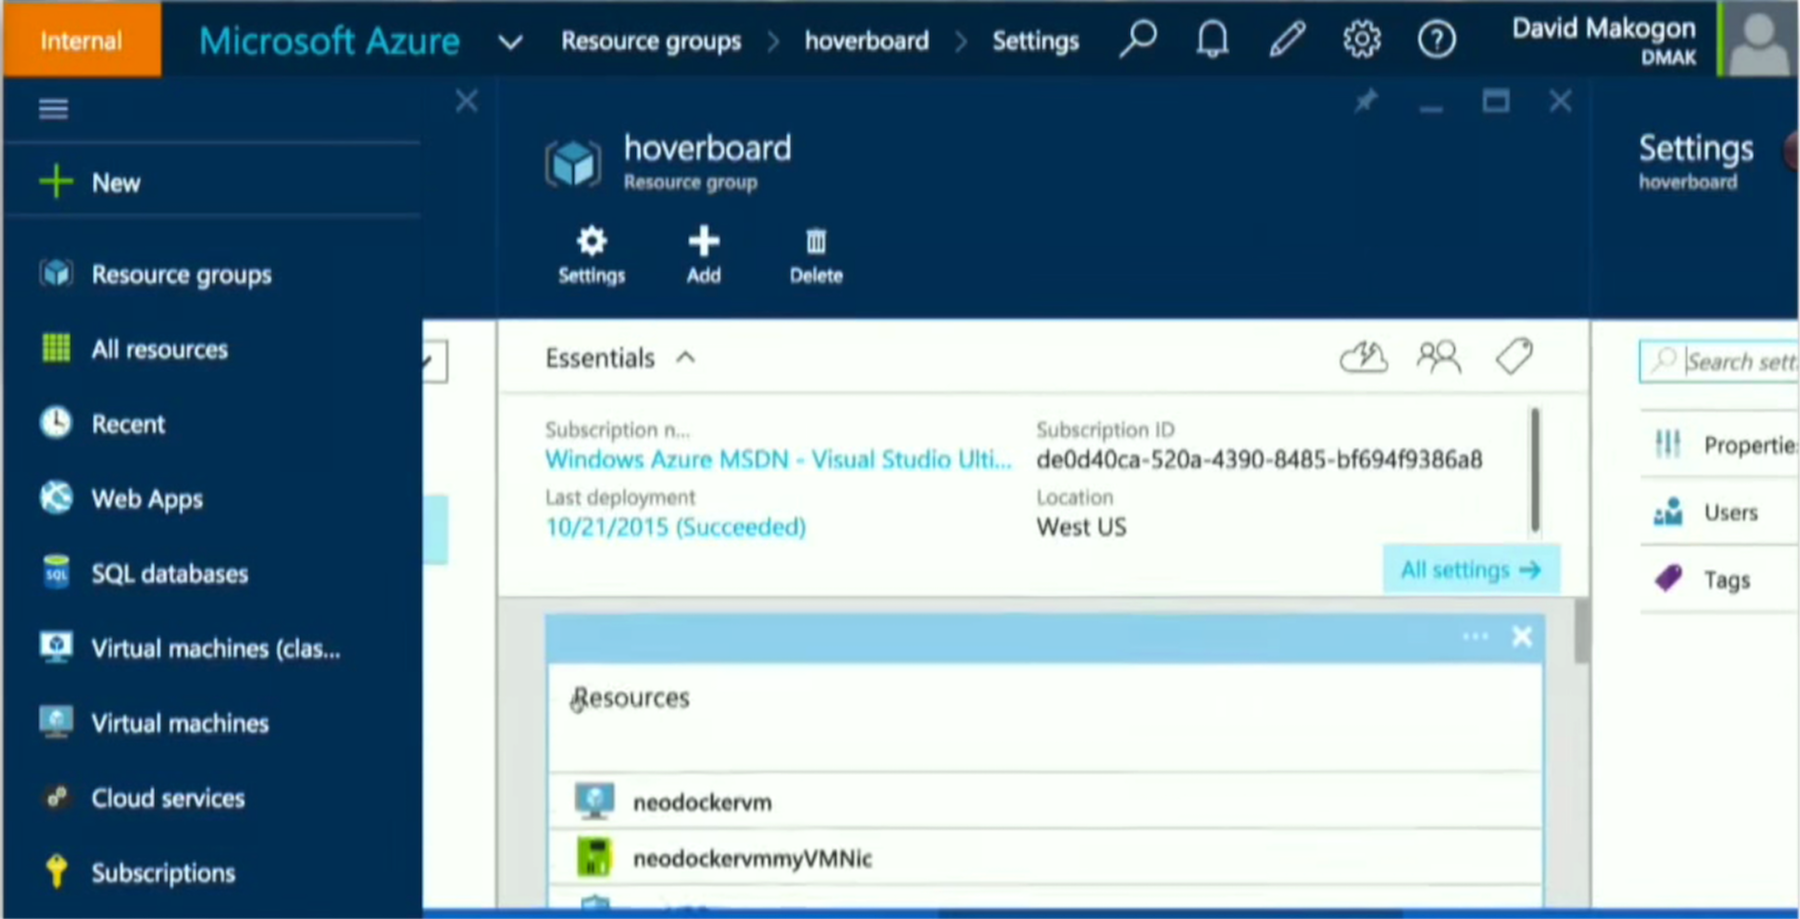 Grouped Resources in Microsoft Azure